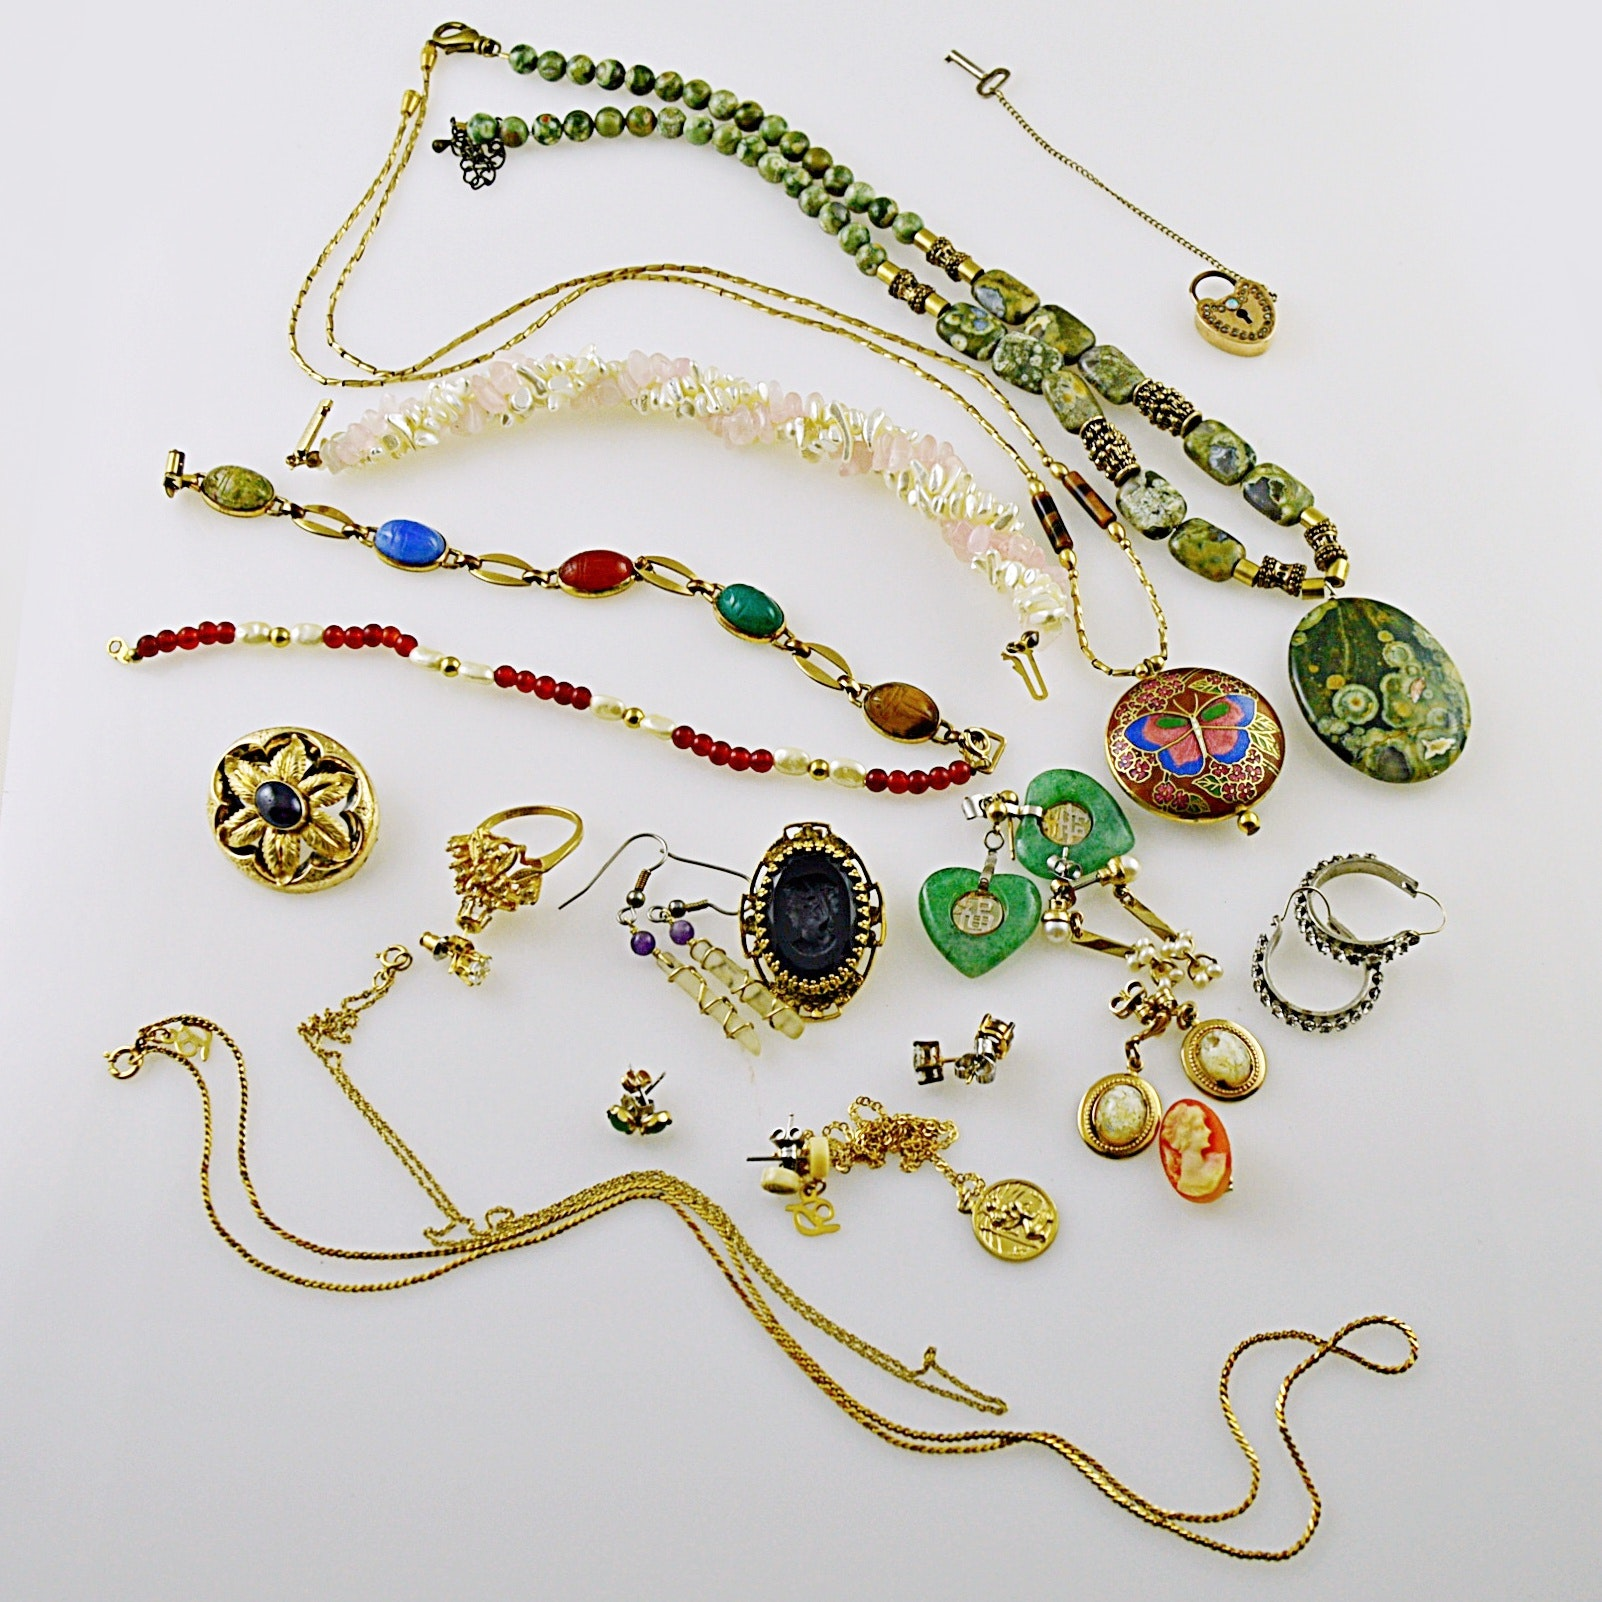 Vintage and Modern Jewelry with Stones